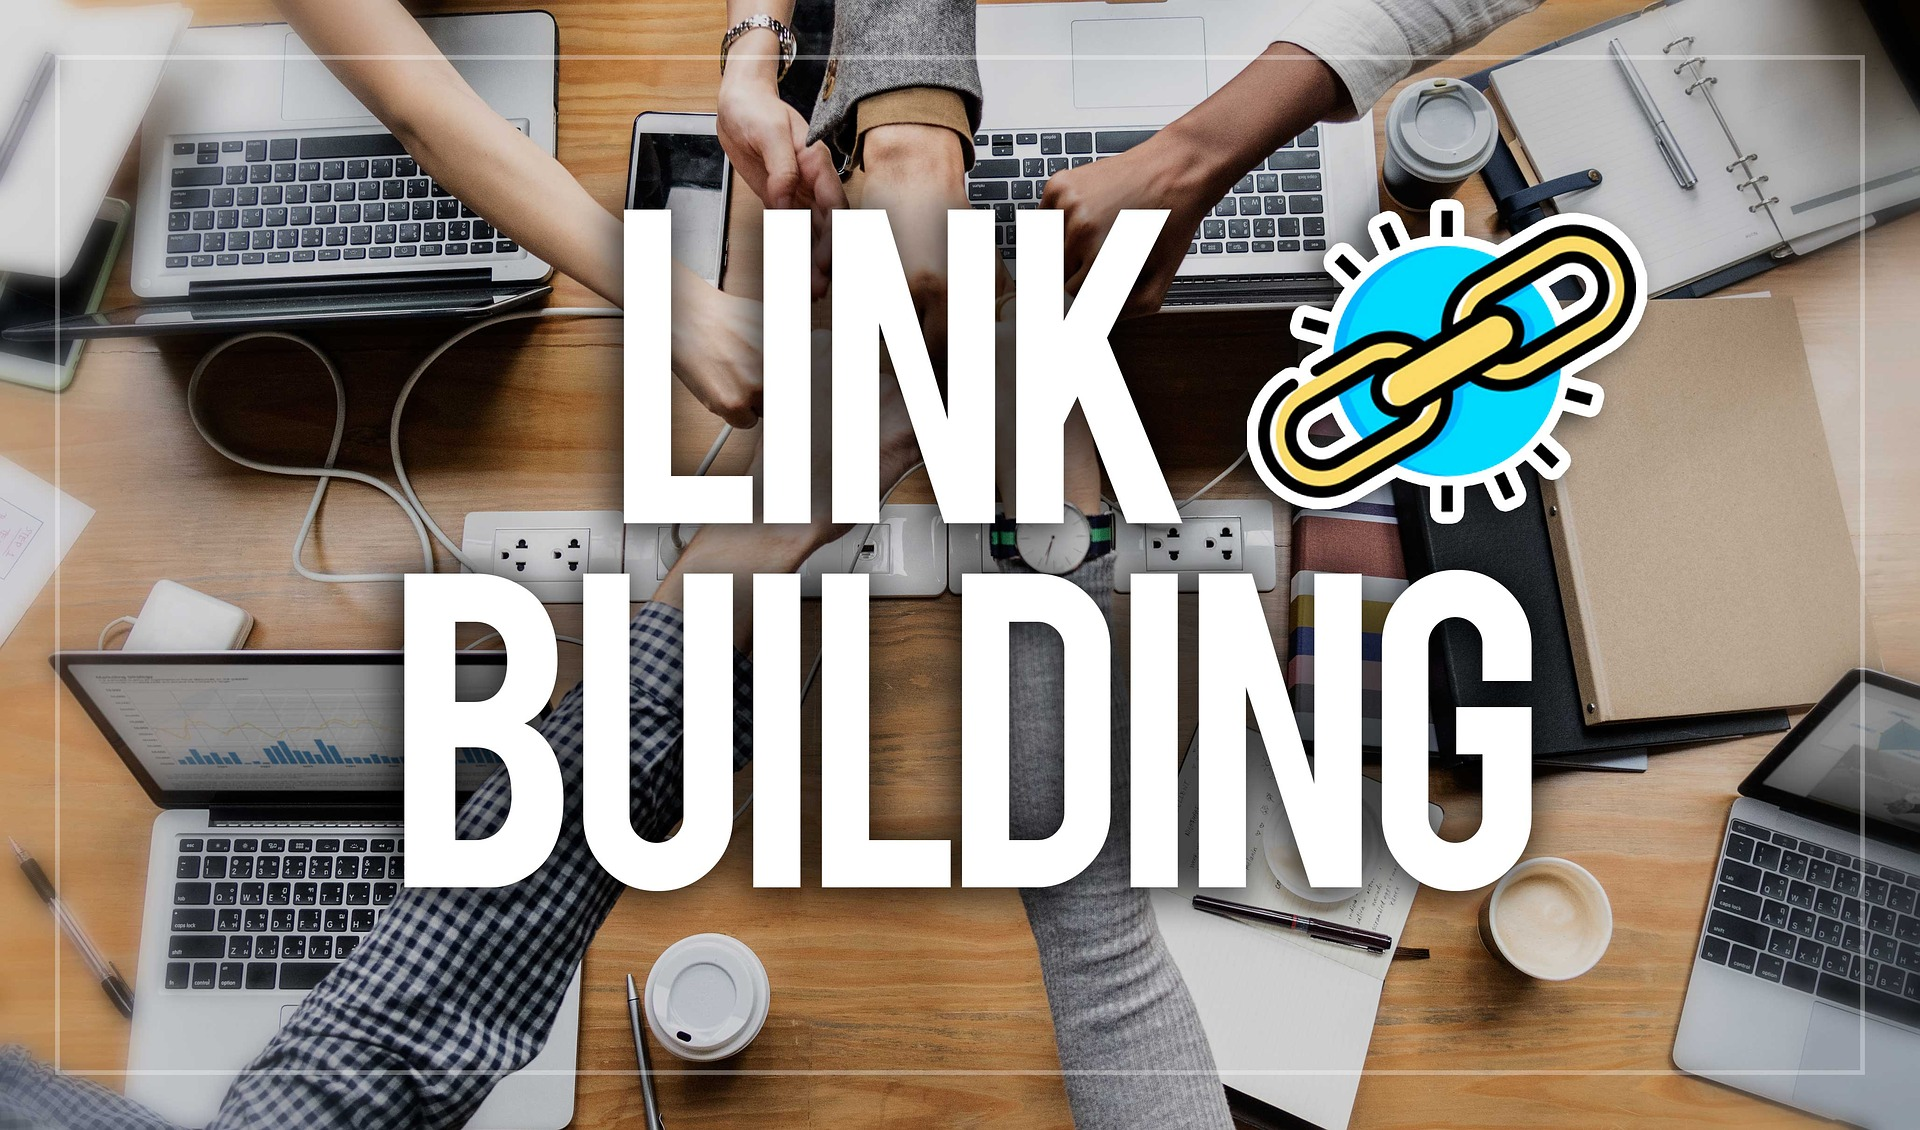 50 high quality Do-follow blog comment backlinks for better ranking